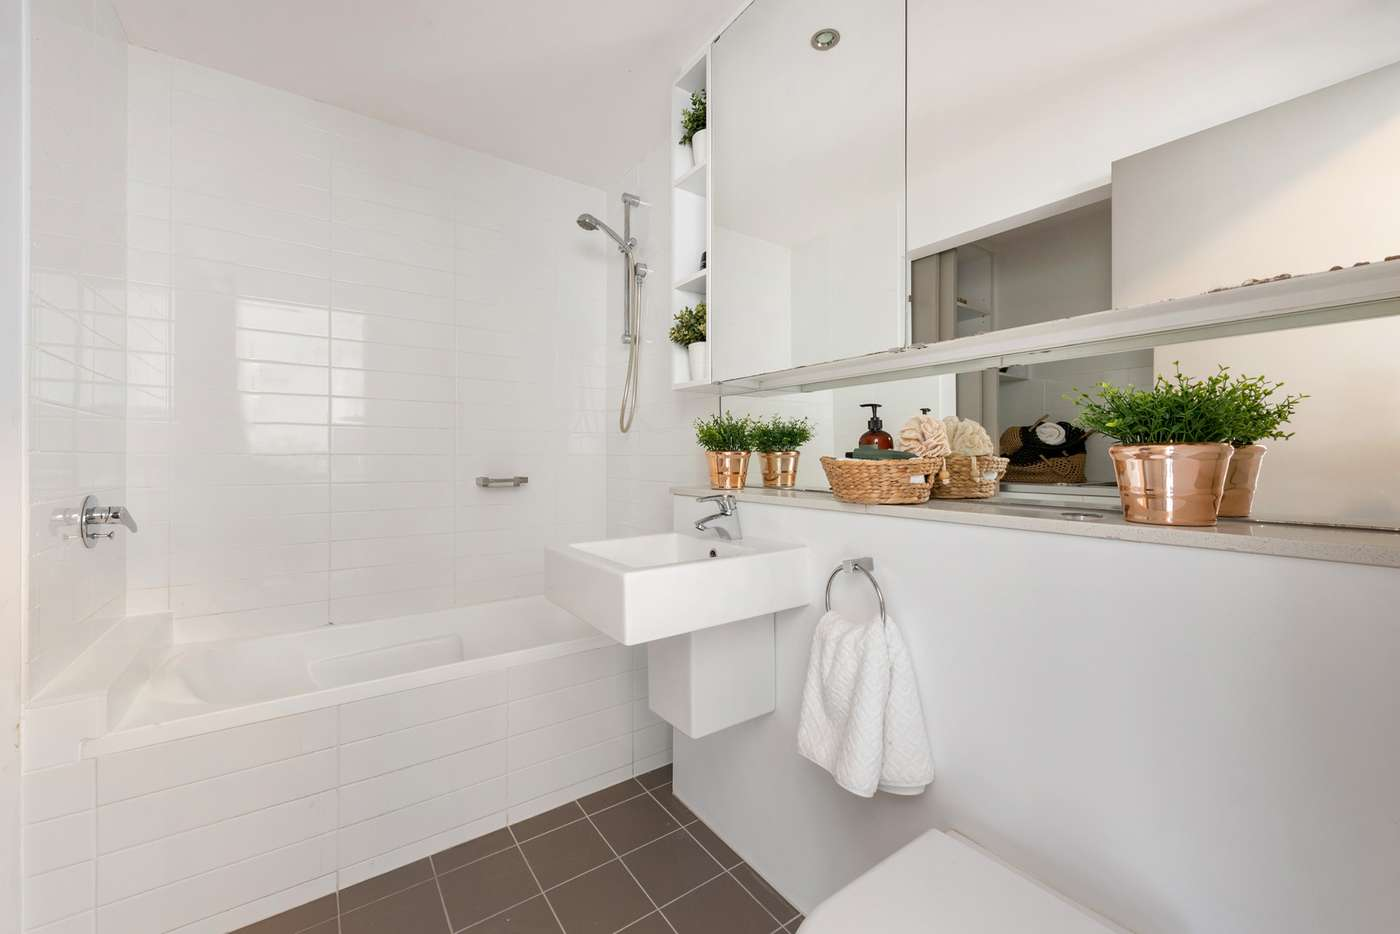 Fifth view of Homely apartment listing, 876/43 Hercules Street, Hamilton QLD 4007